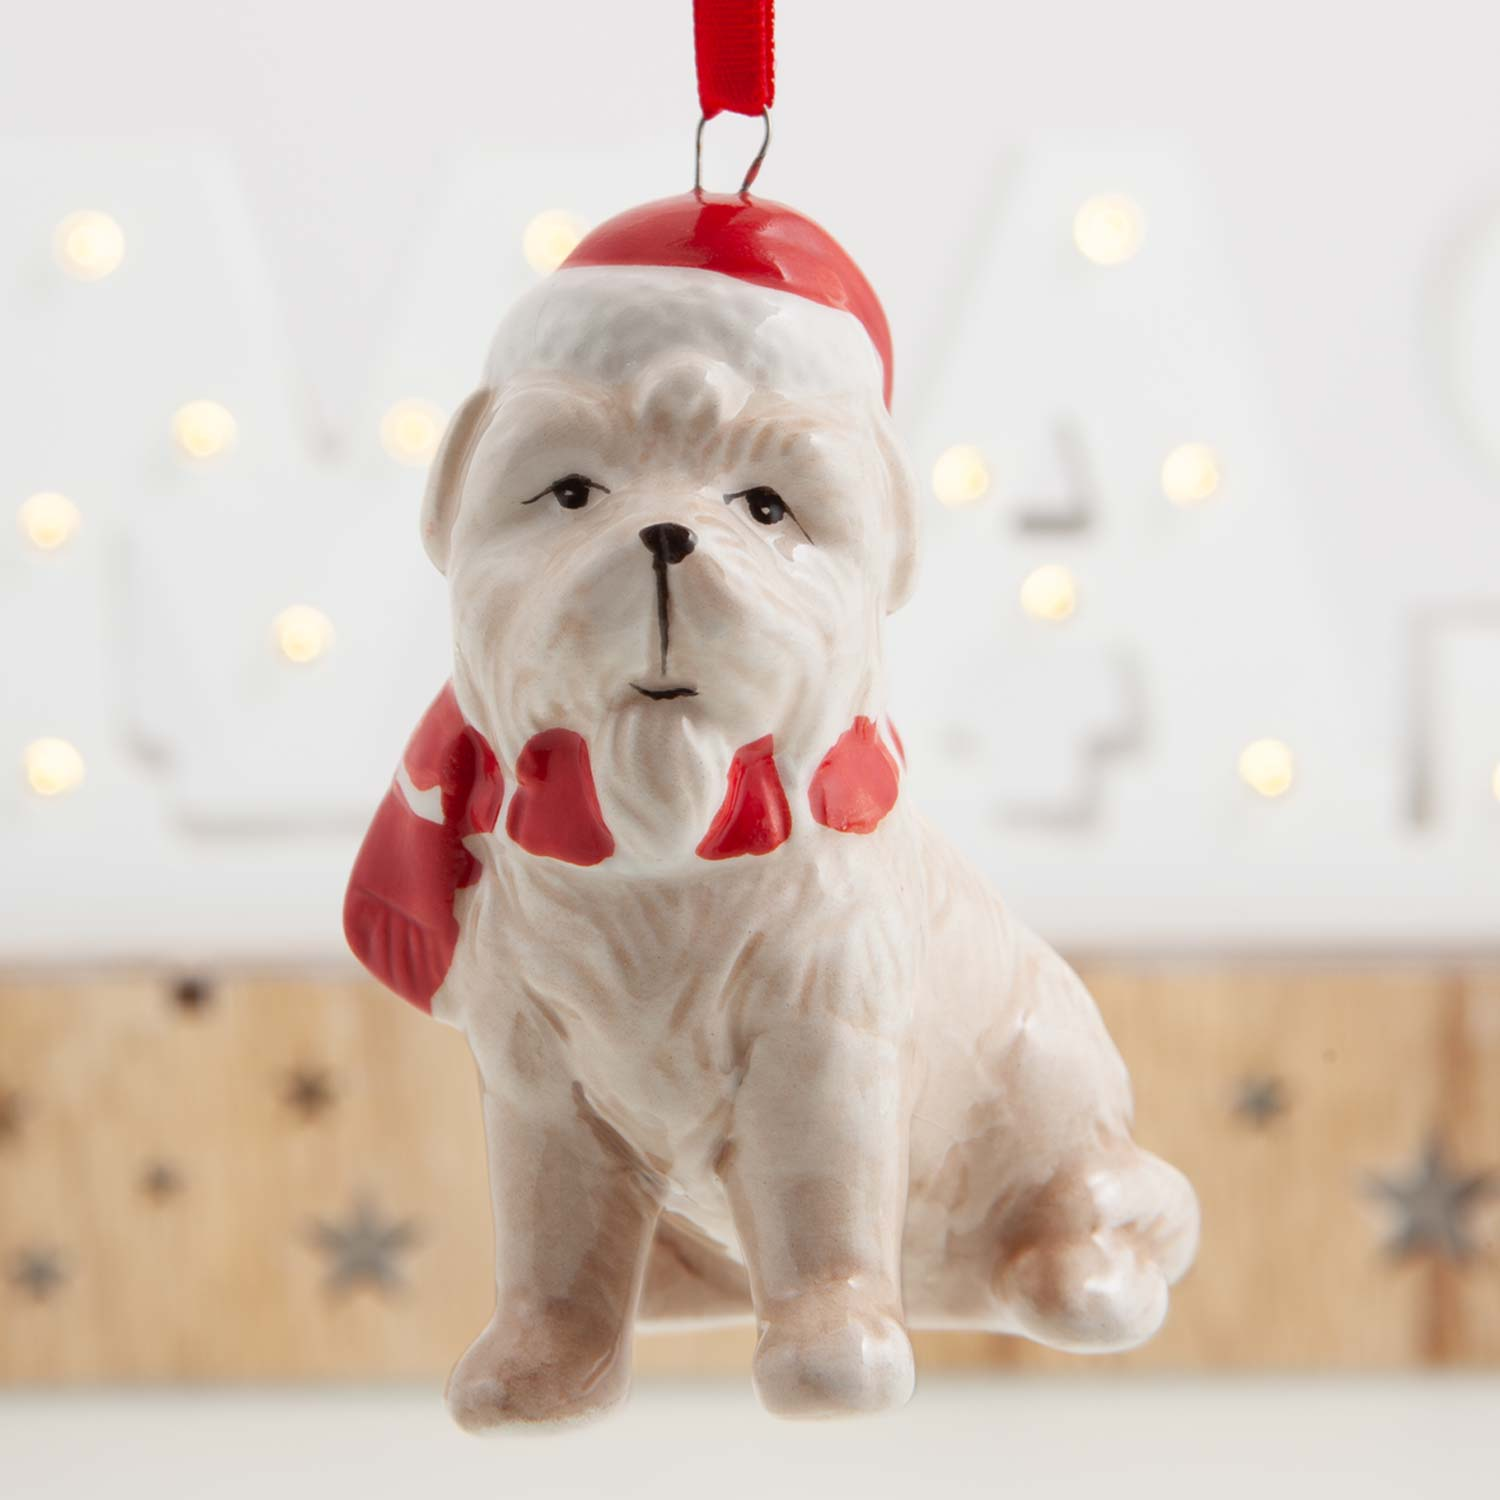 Dog Krazy Gifts -  Ceramic Hanging Dog Decoration available from the Christmas Grotto at DogKrazyGifts.co.uk